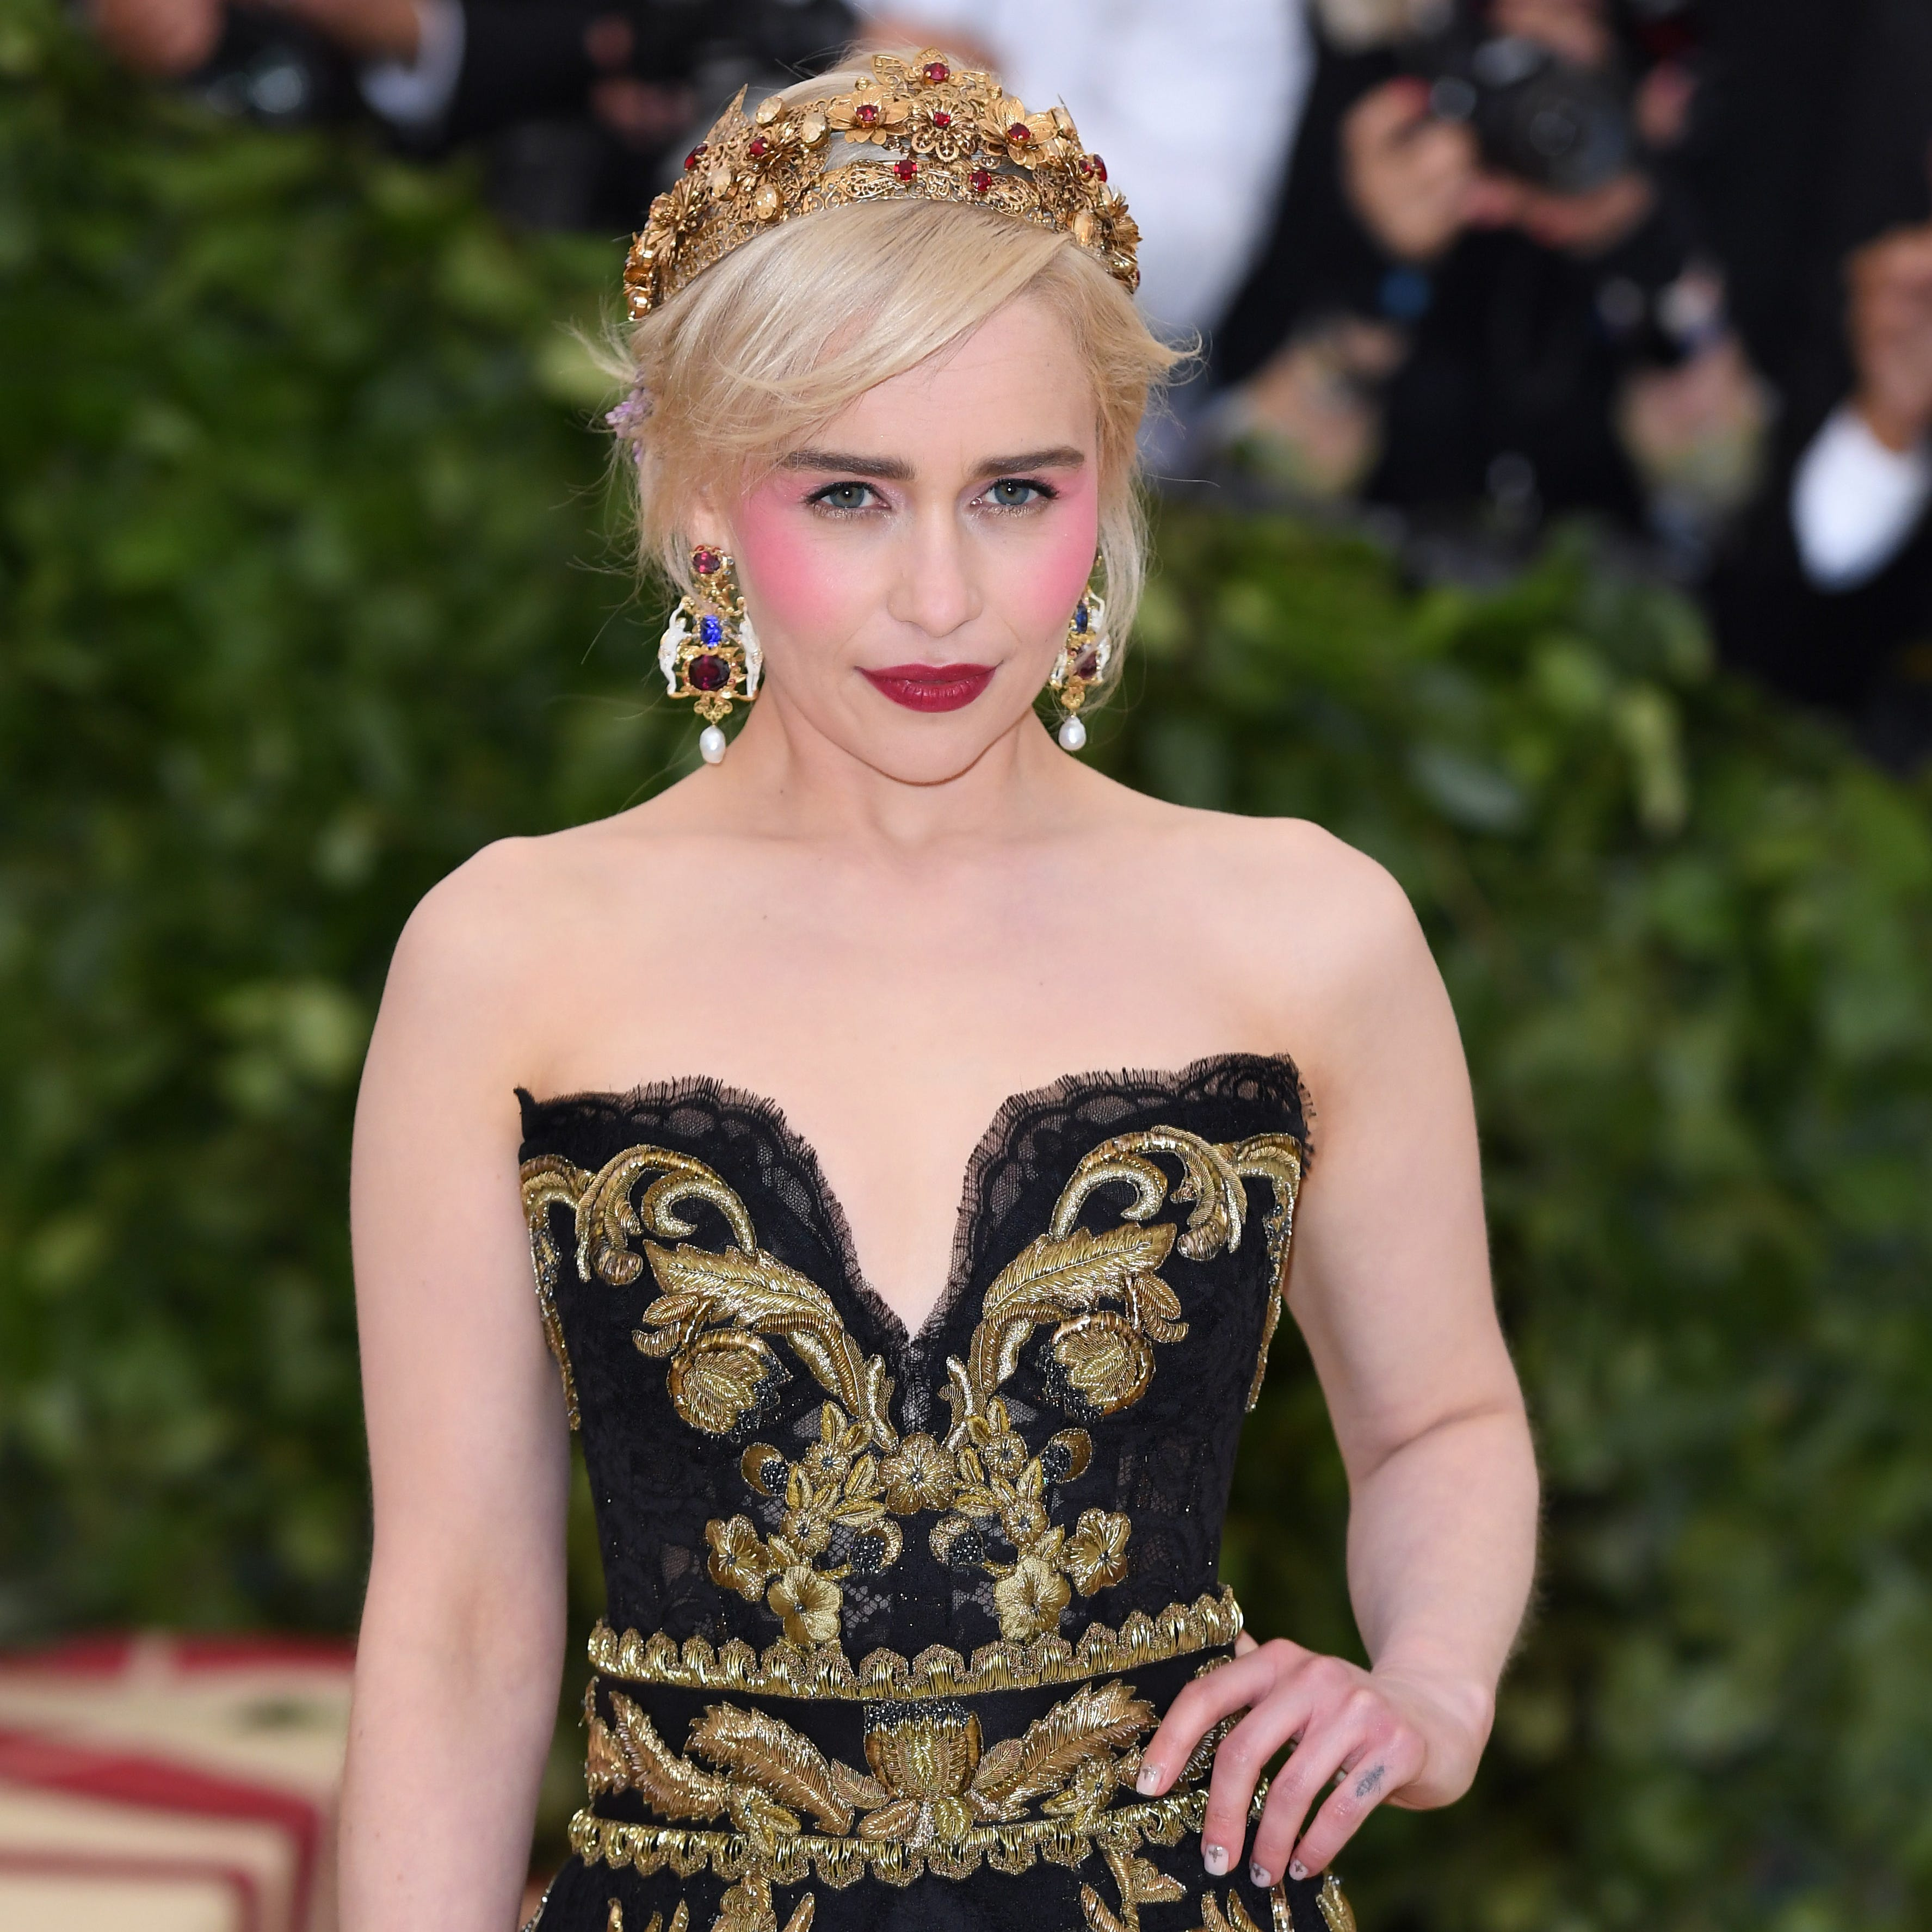 The Religious Meaning Behind The Met Gala Crowns 2018